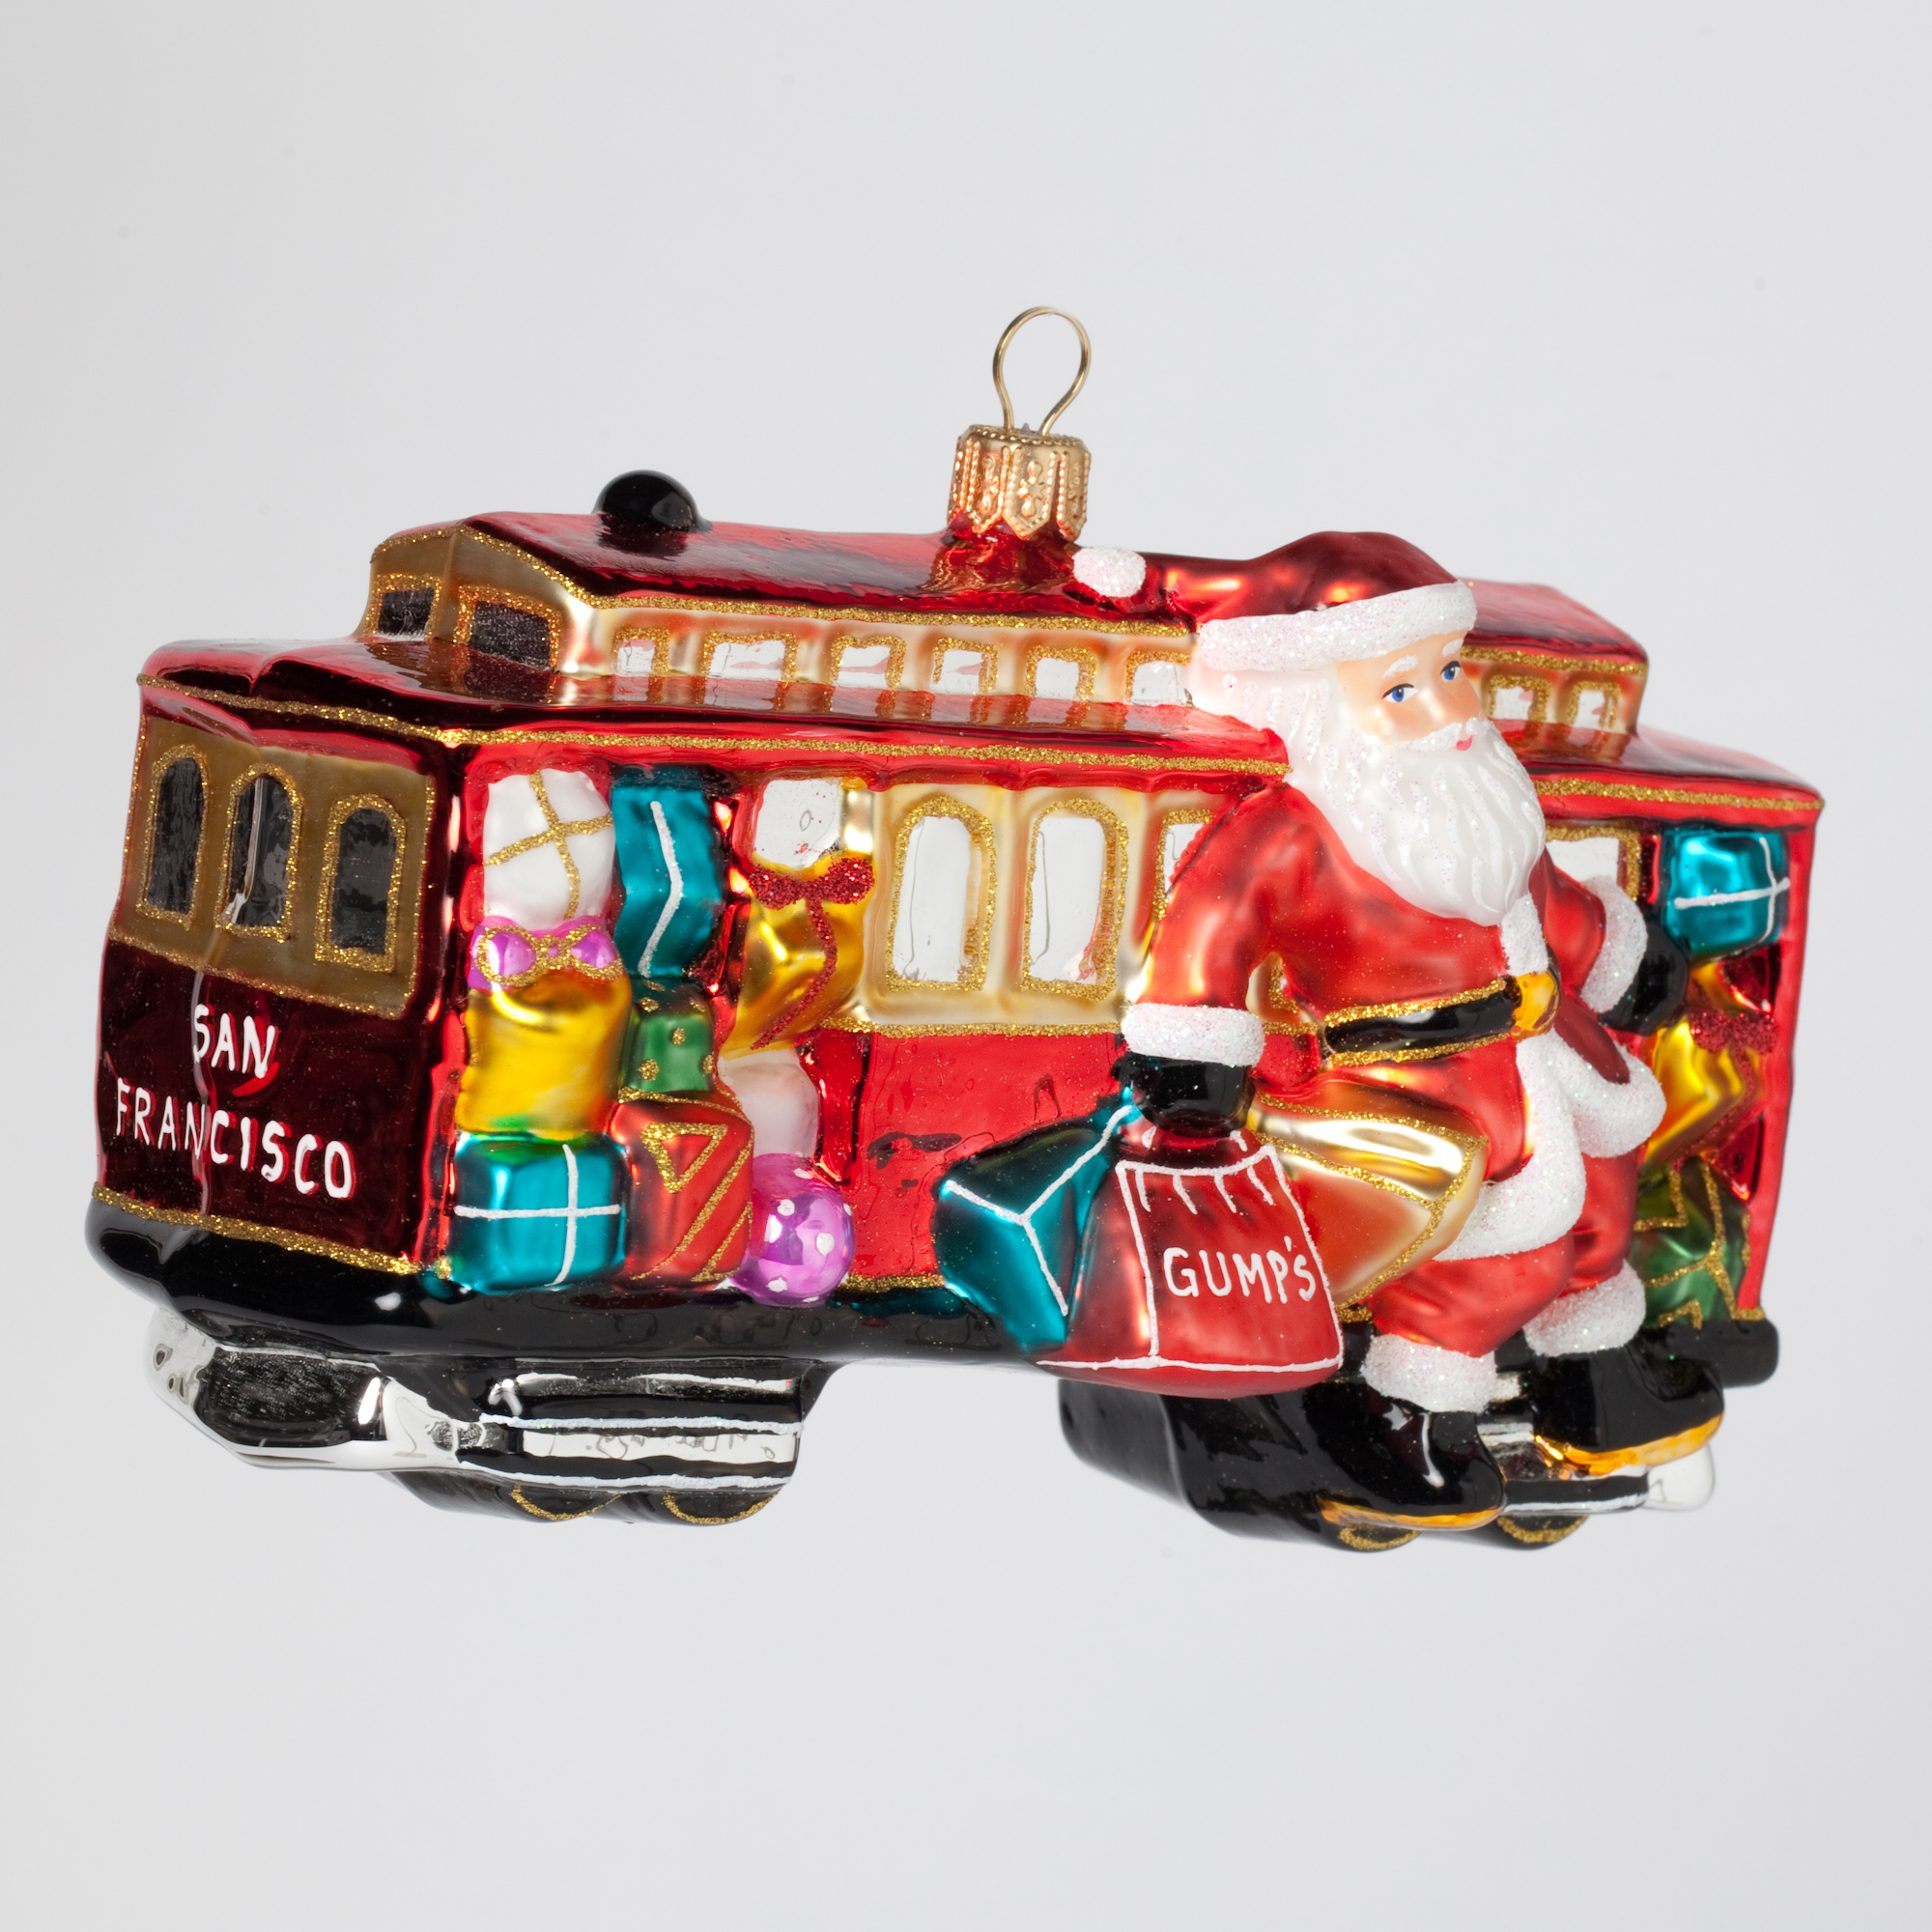 San Francisco Cable Car Santa Christmas Ornament